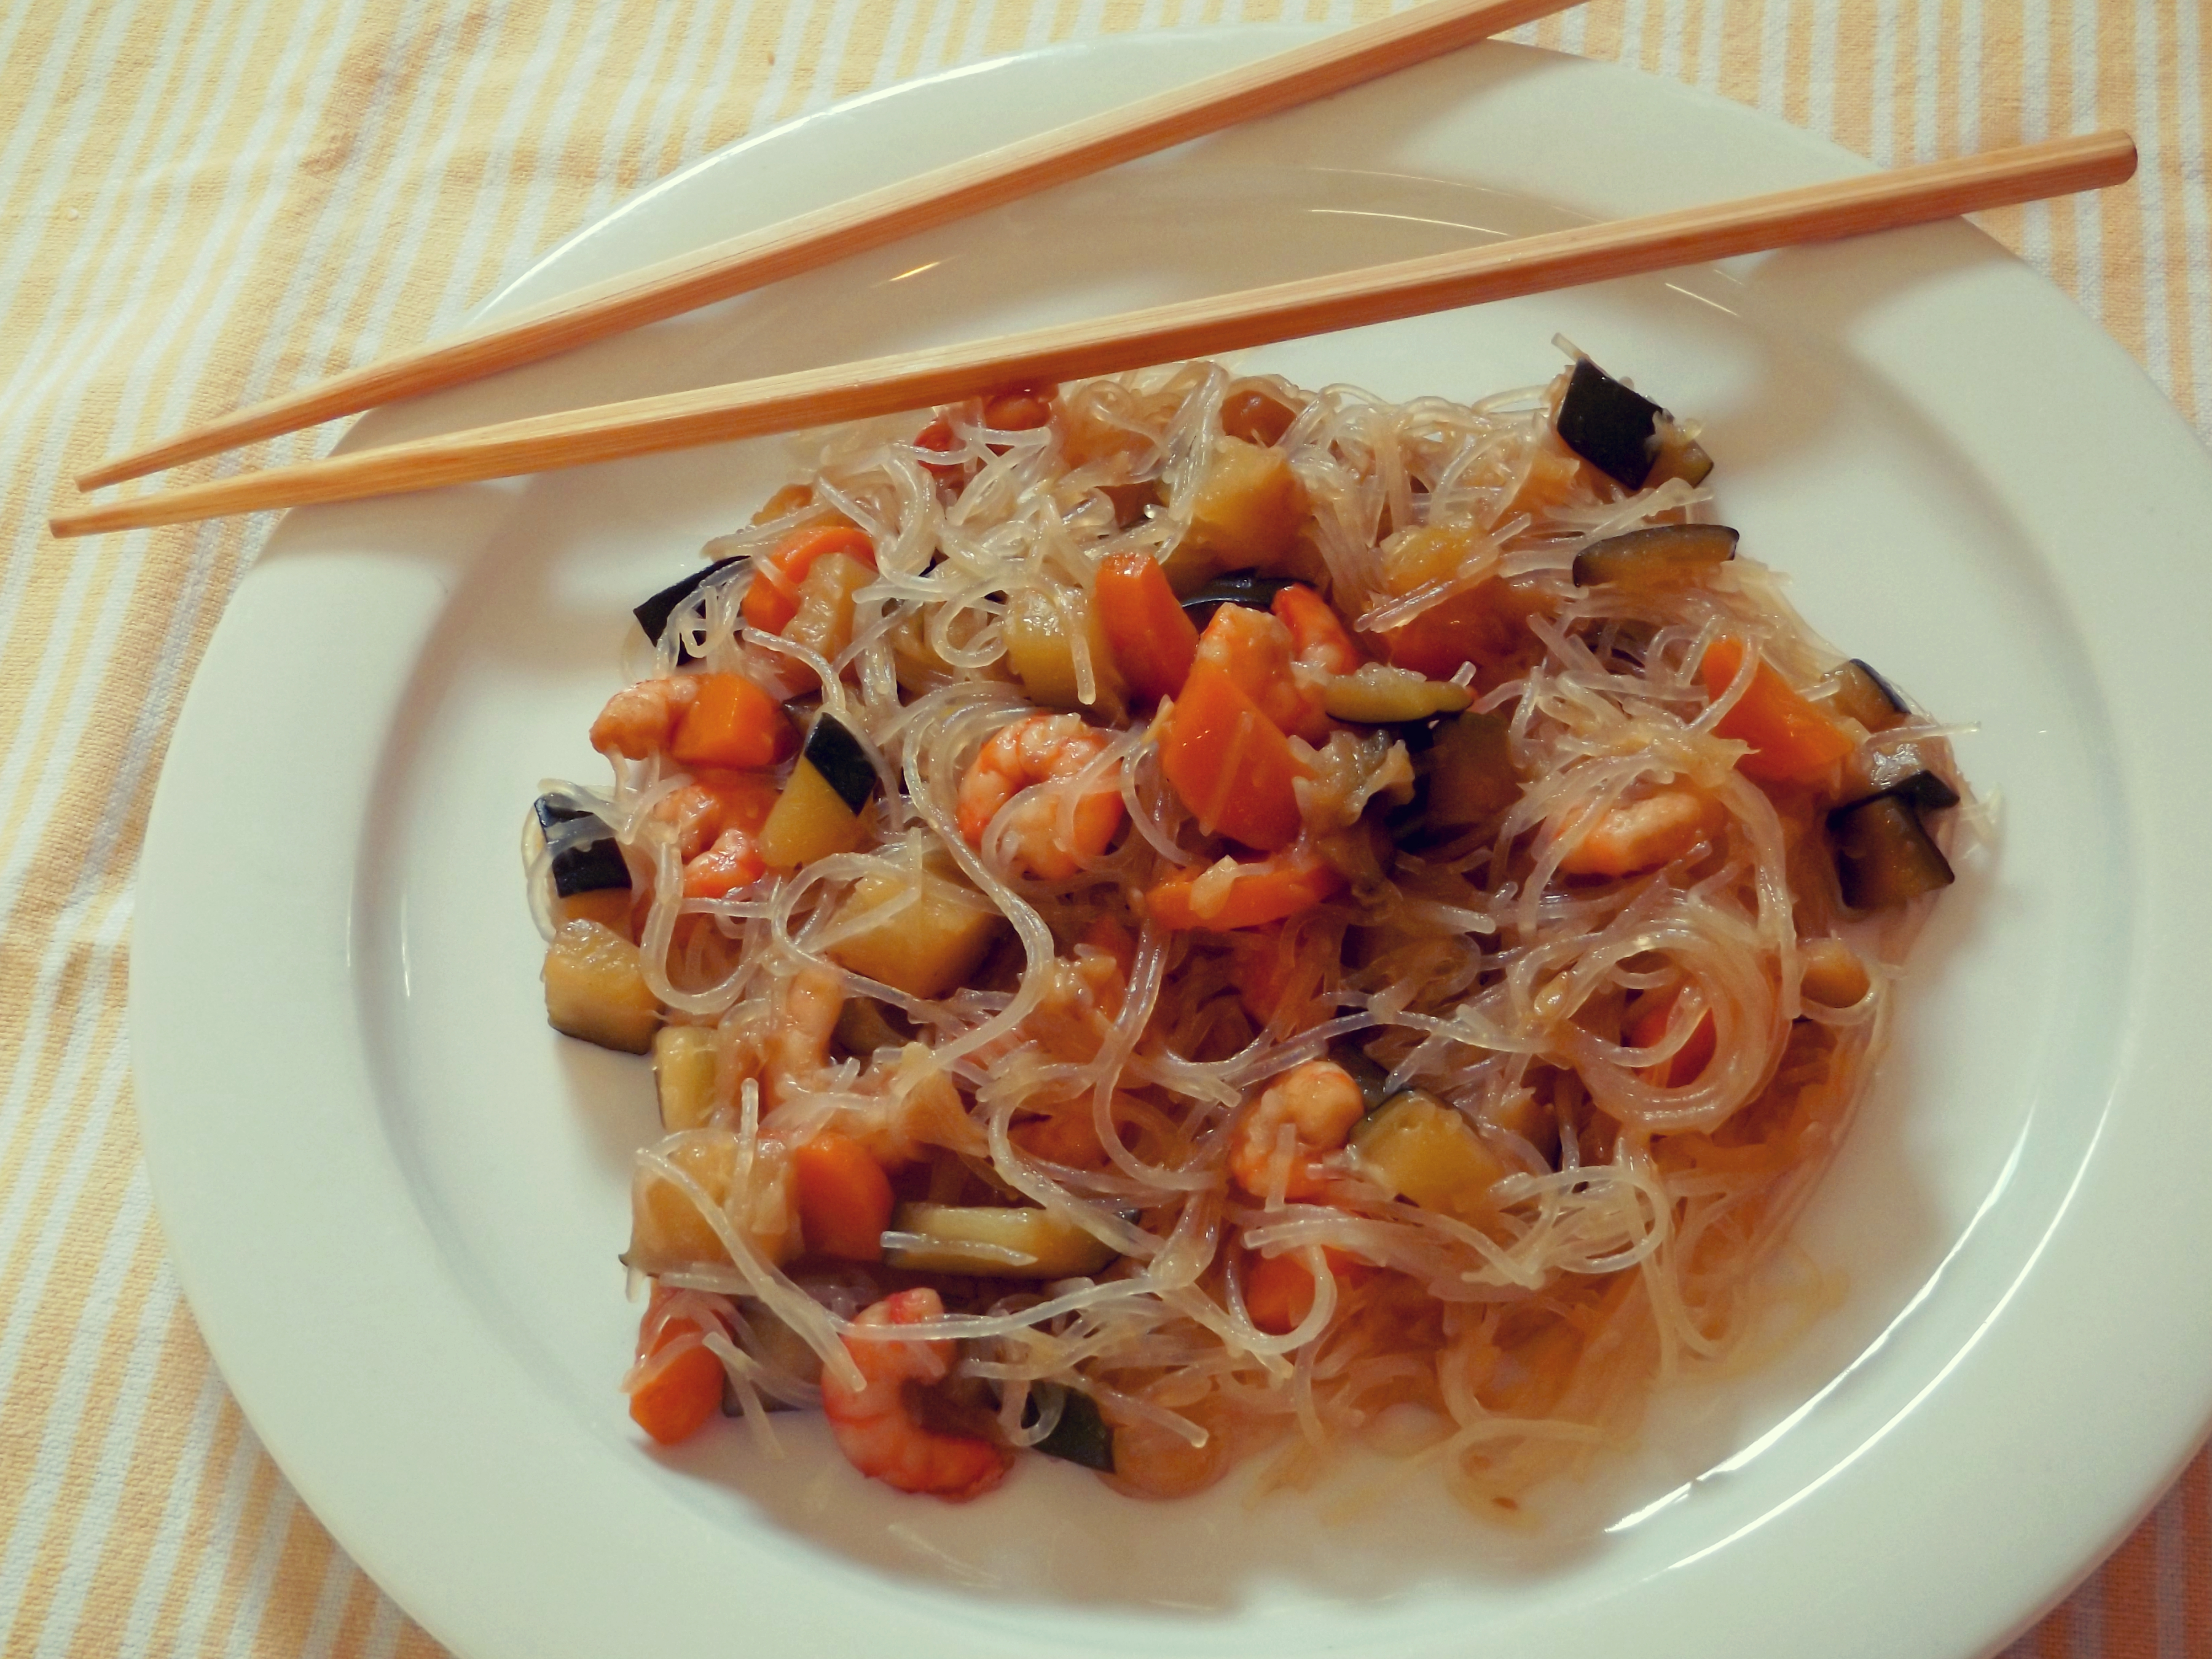 Rice spaghetti with shrimps and vegetables